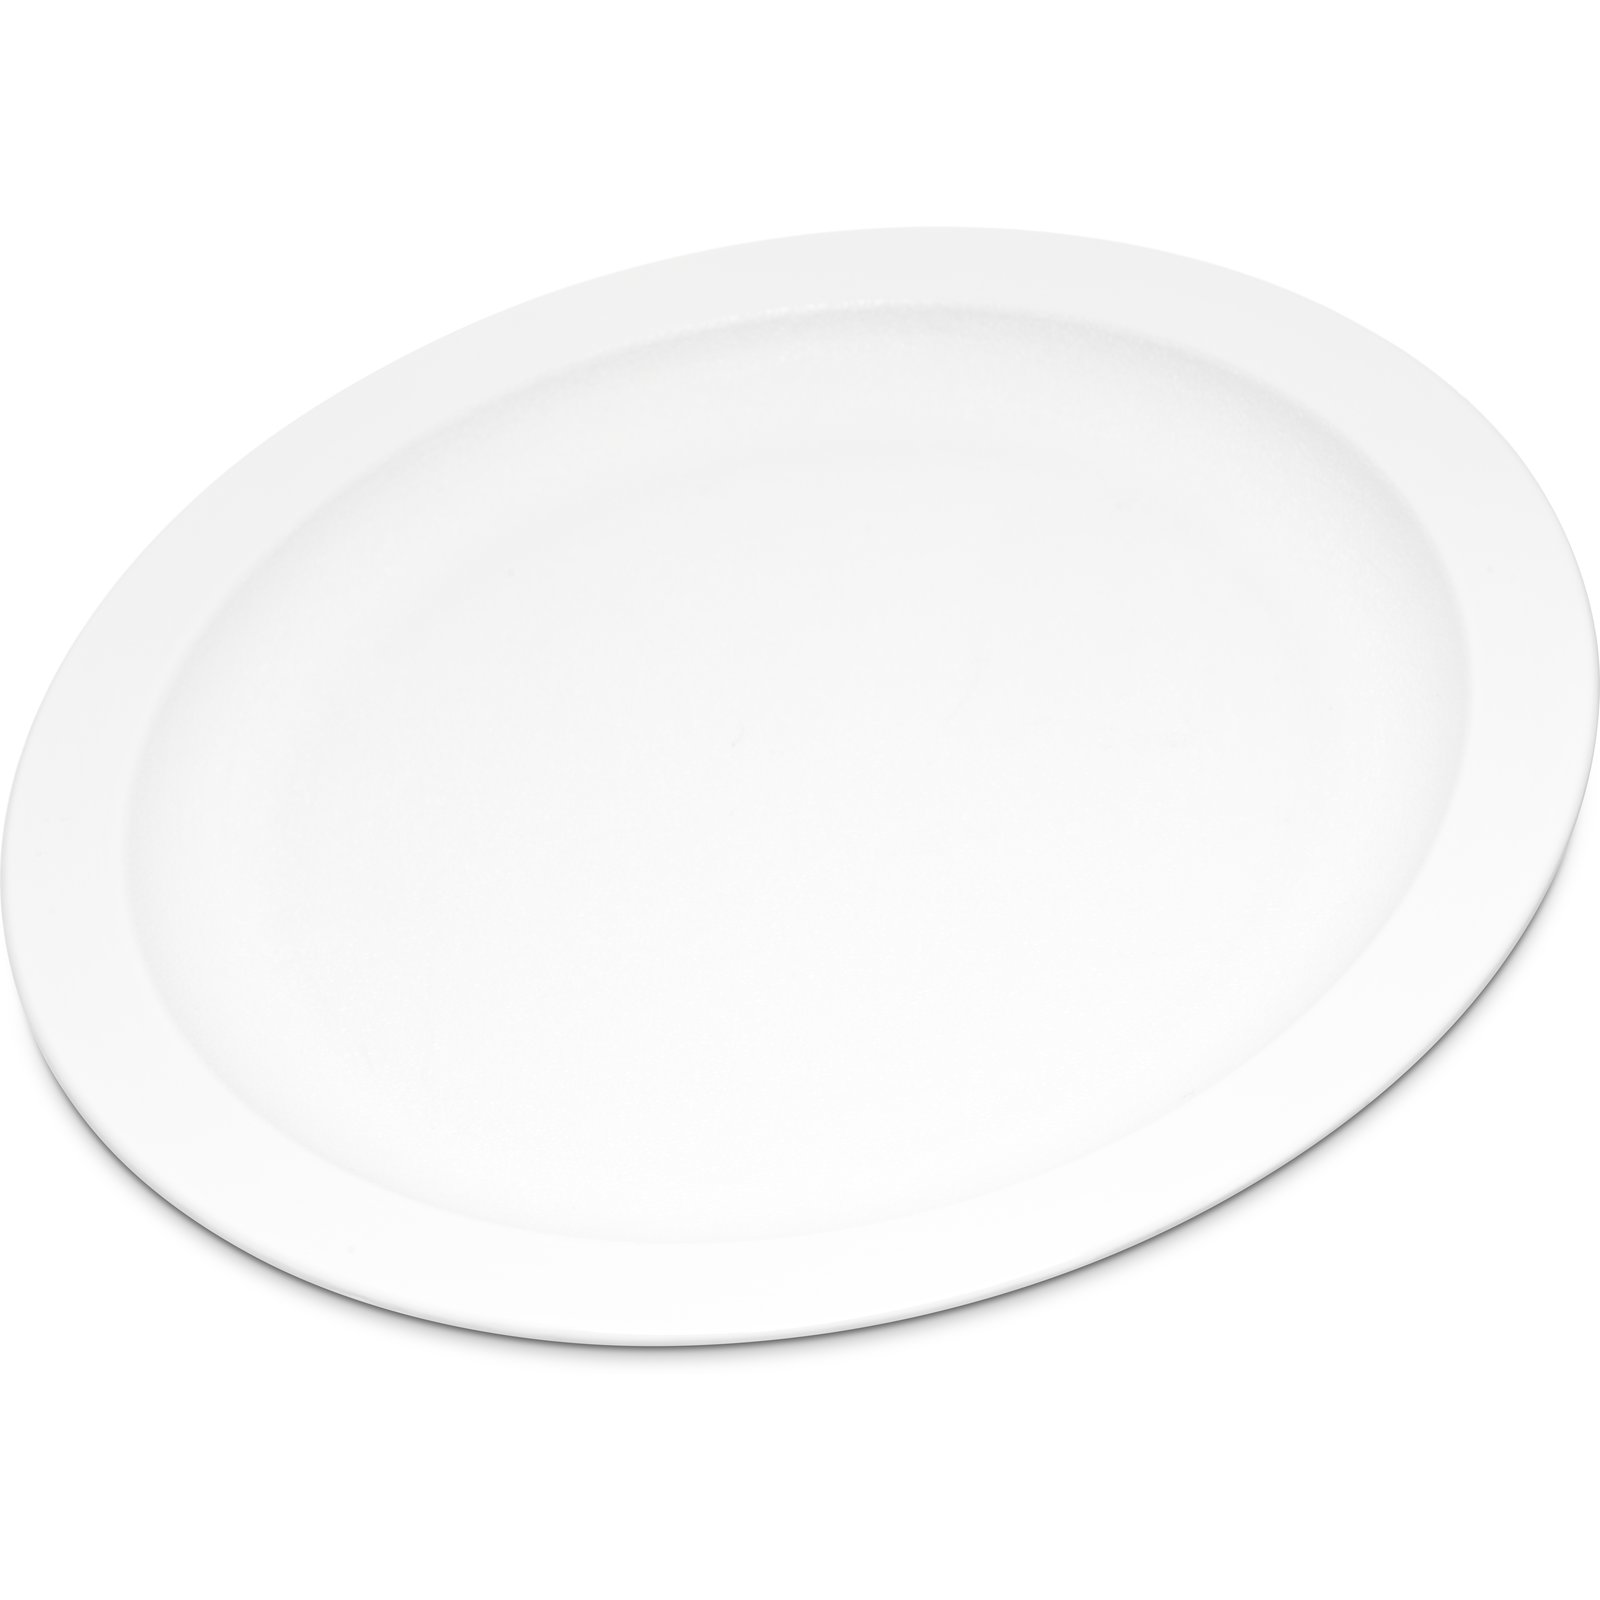 PCD209 Polycarbonate Narrow Rim Plate 9\  Available in 6 colors ...  sc 1 st  Carlisle FoodService Products & Polycarbonate Dinnerware | Carlisle FoodService Products